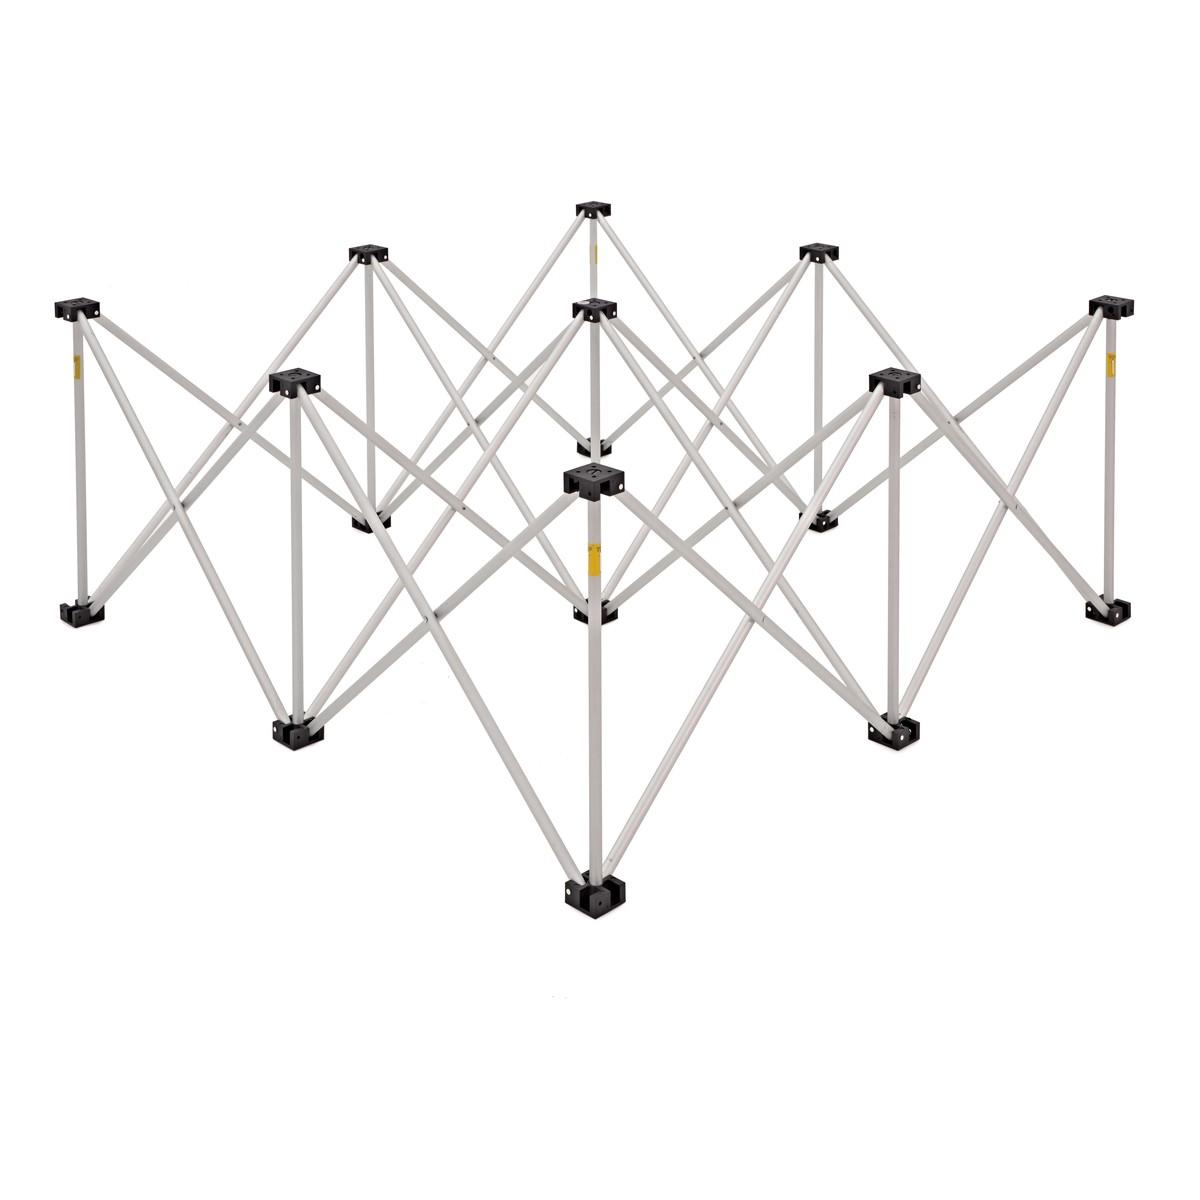 1m X 1m Portable Stage Kit By Gear4music 40cm At Gear4music